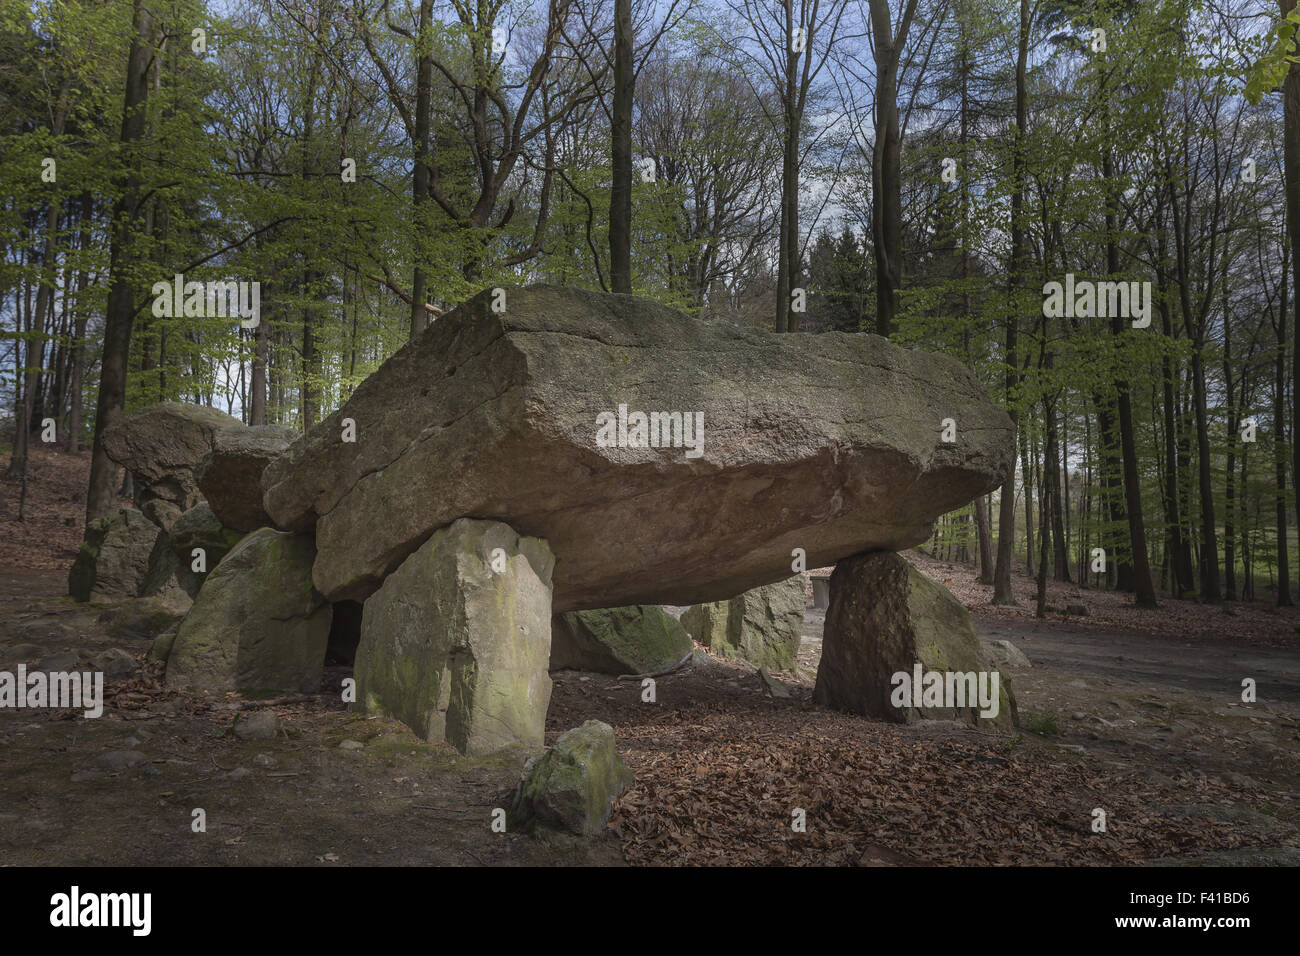 Neolithic grave, Megalithic stones in Germany Stock Photo